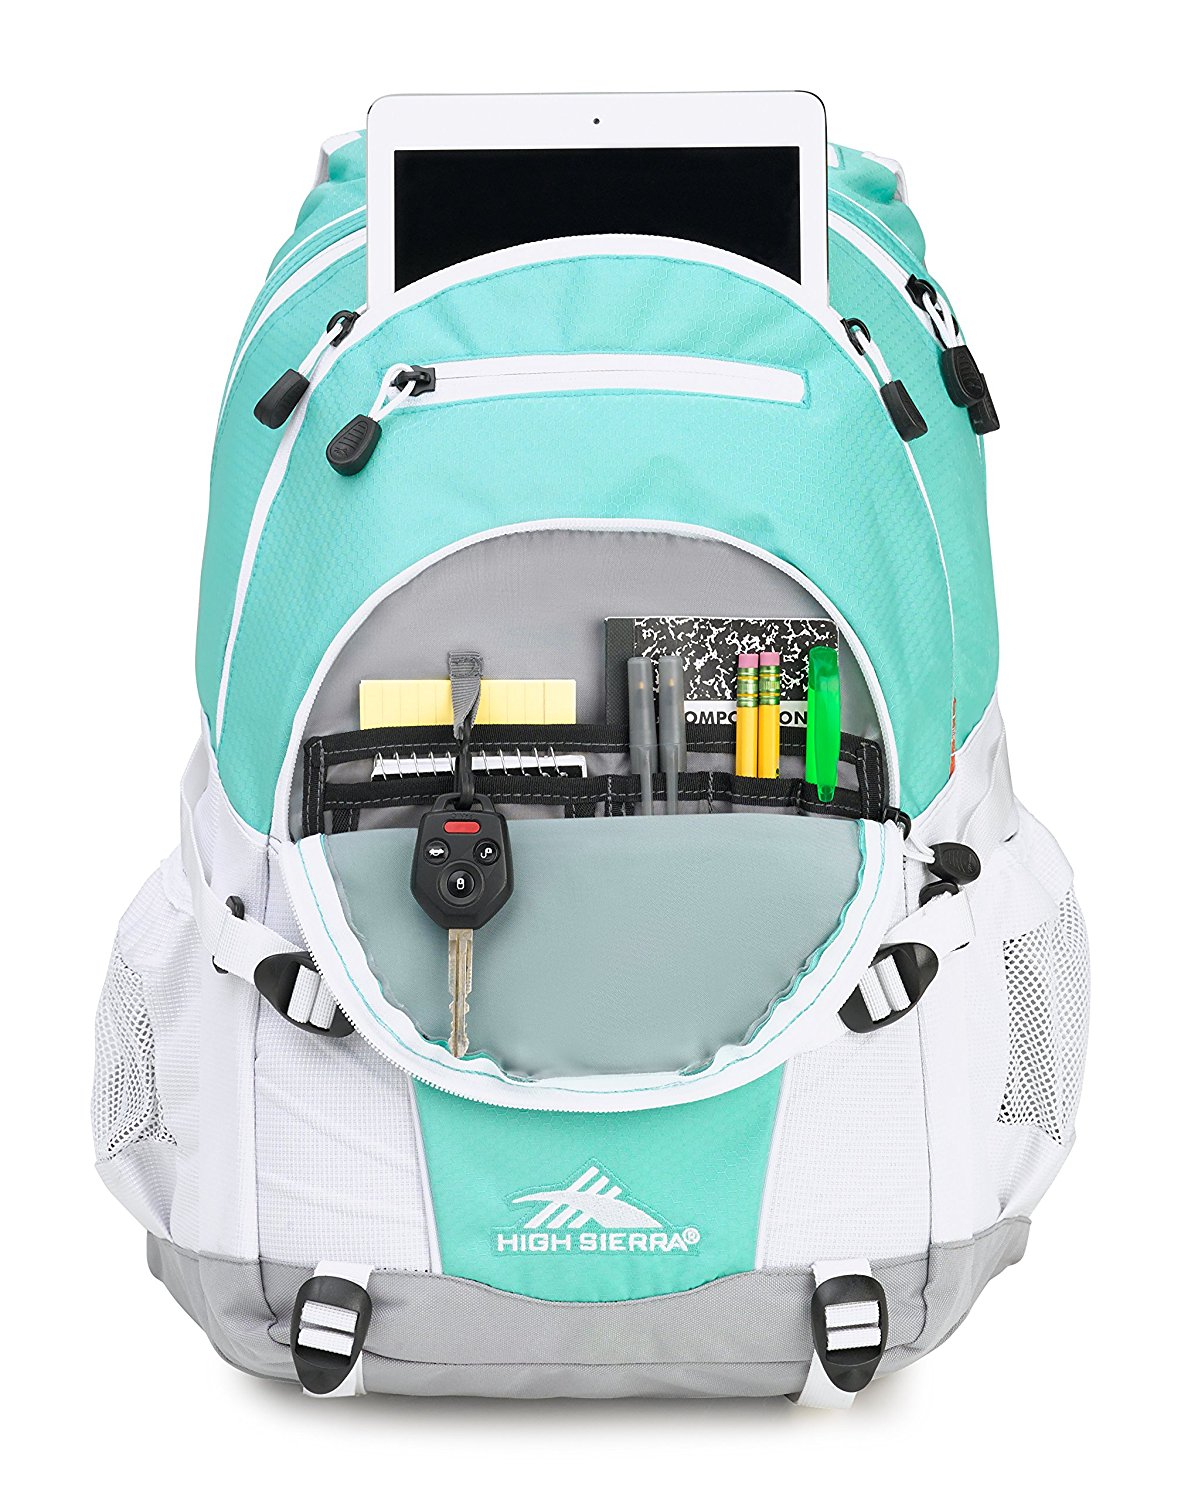 2017 Back-to-School Popular Backpacks Teens & Tweens - High Sierra Loop Backpack (Aquamarine/Ash/White)